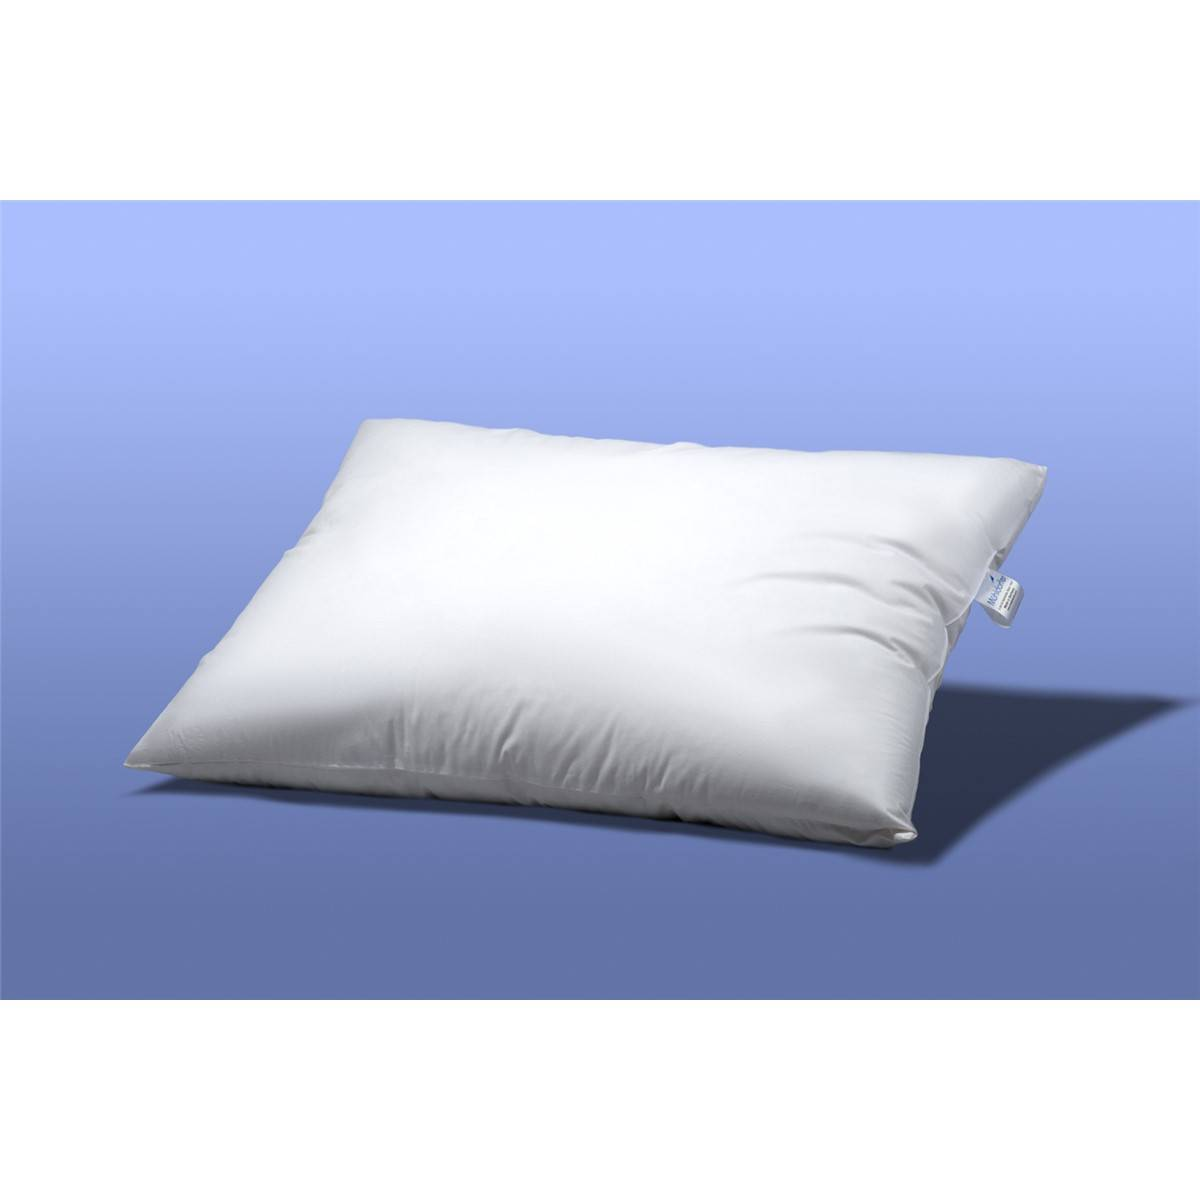 pair feather pipeddoublestitch price luxury down half off king products pillow pillows size filled duck white